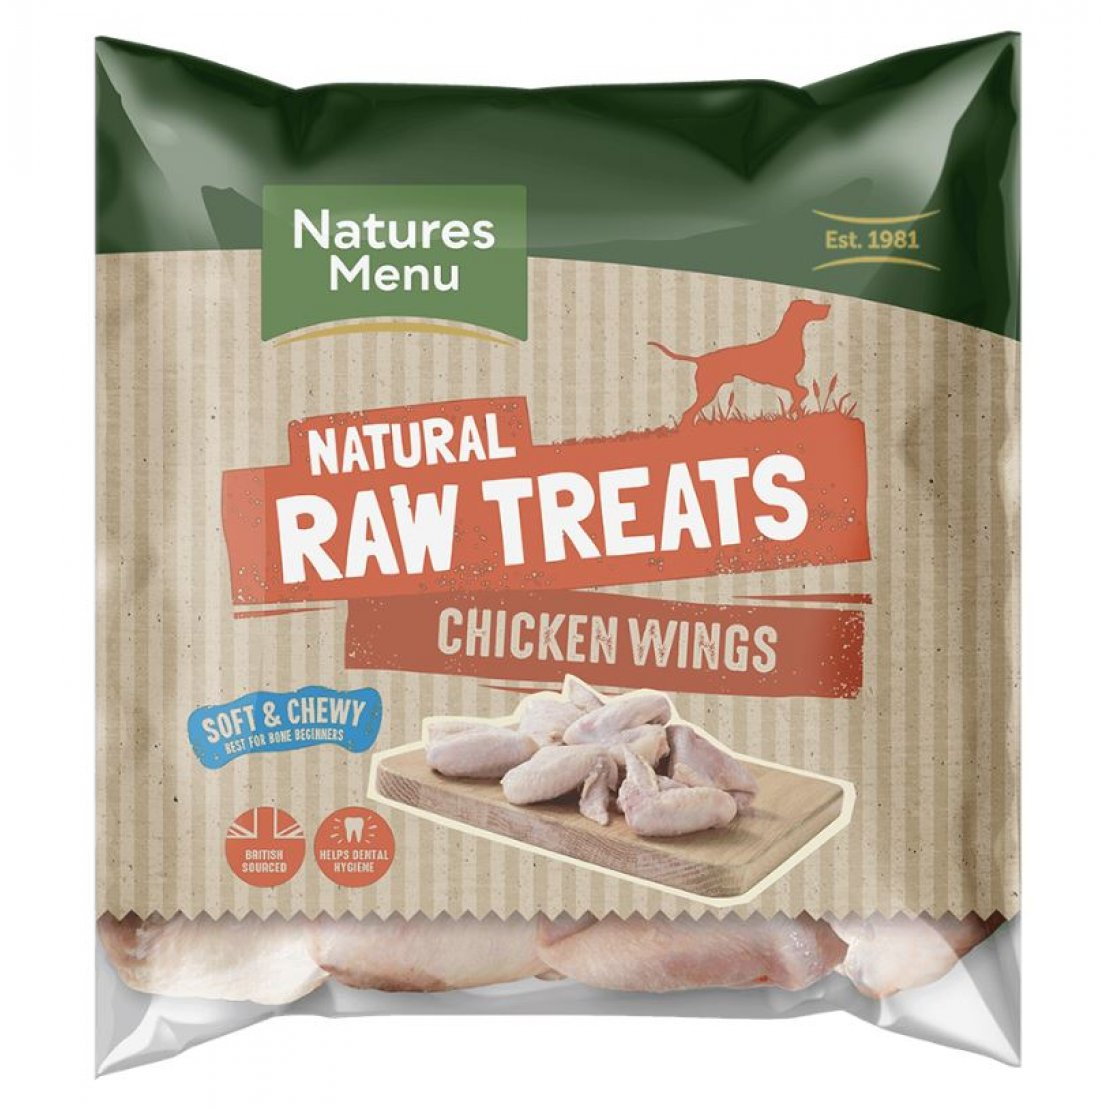 ONLY AVAILABLE FOR LOCAL DELIVERY. Natures Menu Frozen Dog Chew. Chicken Wings